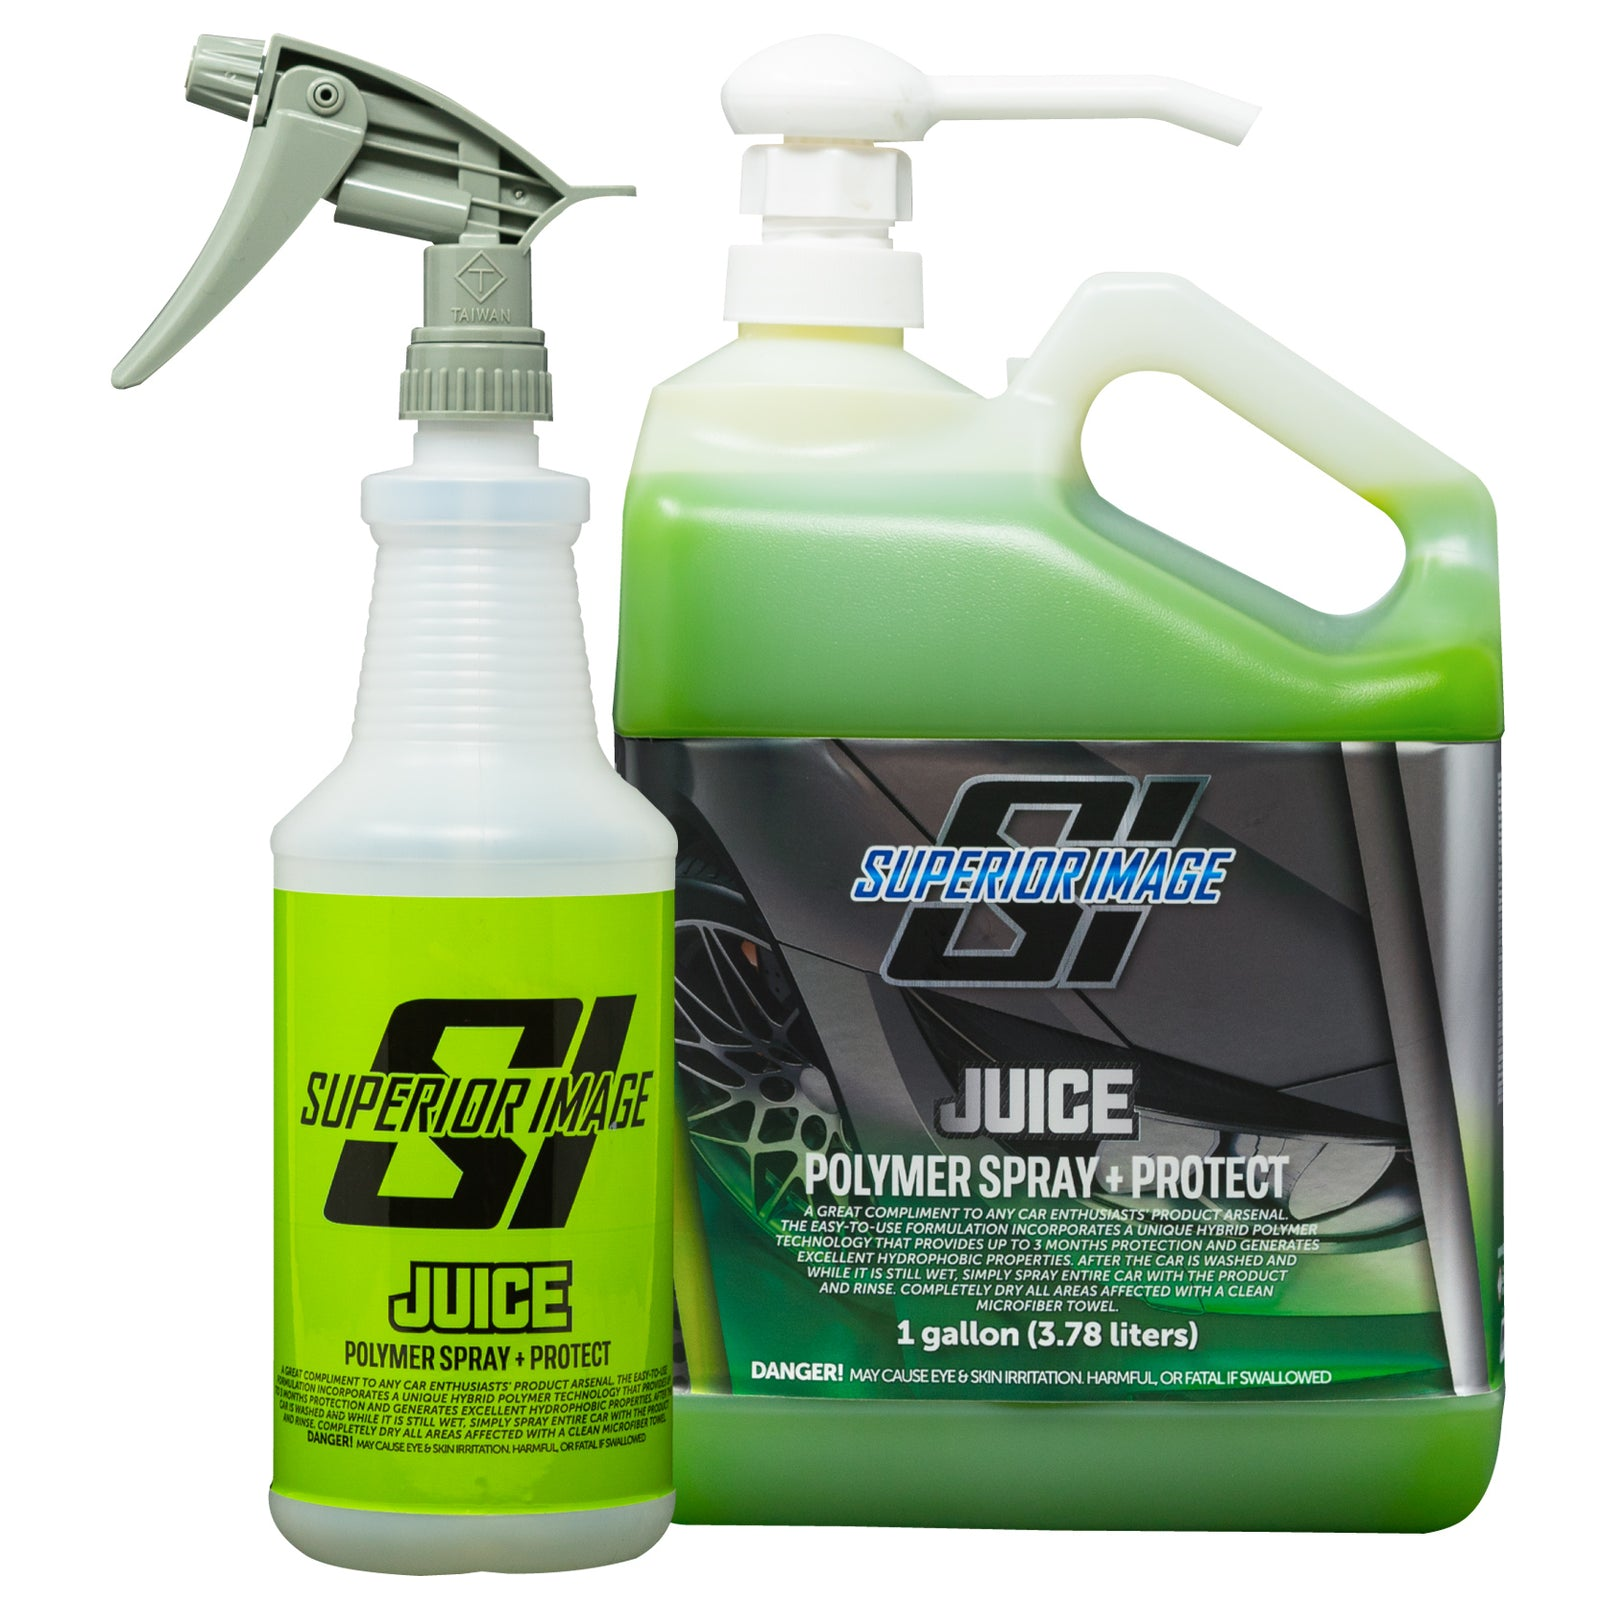 Juice Polymer Spray + Protect